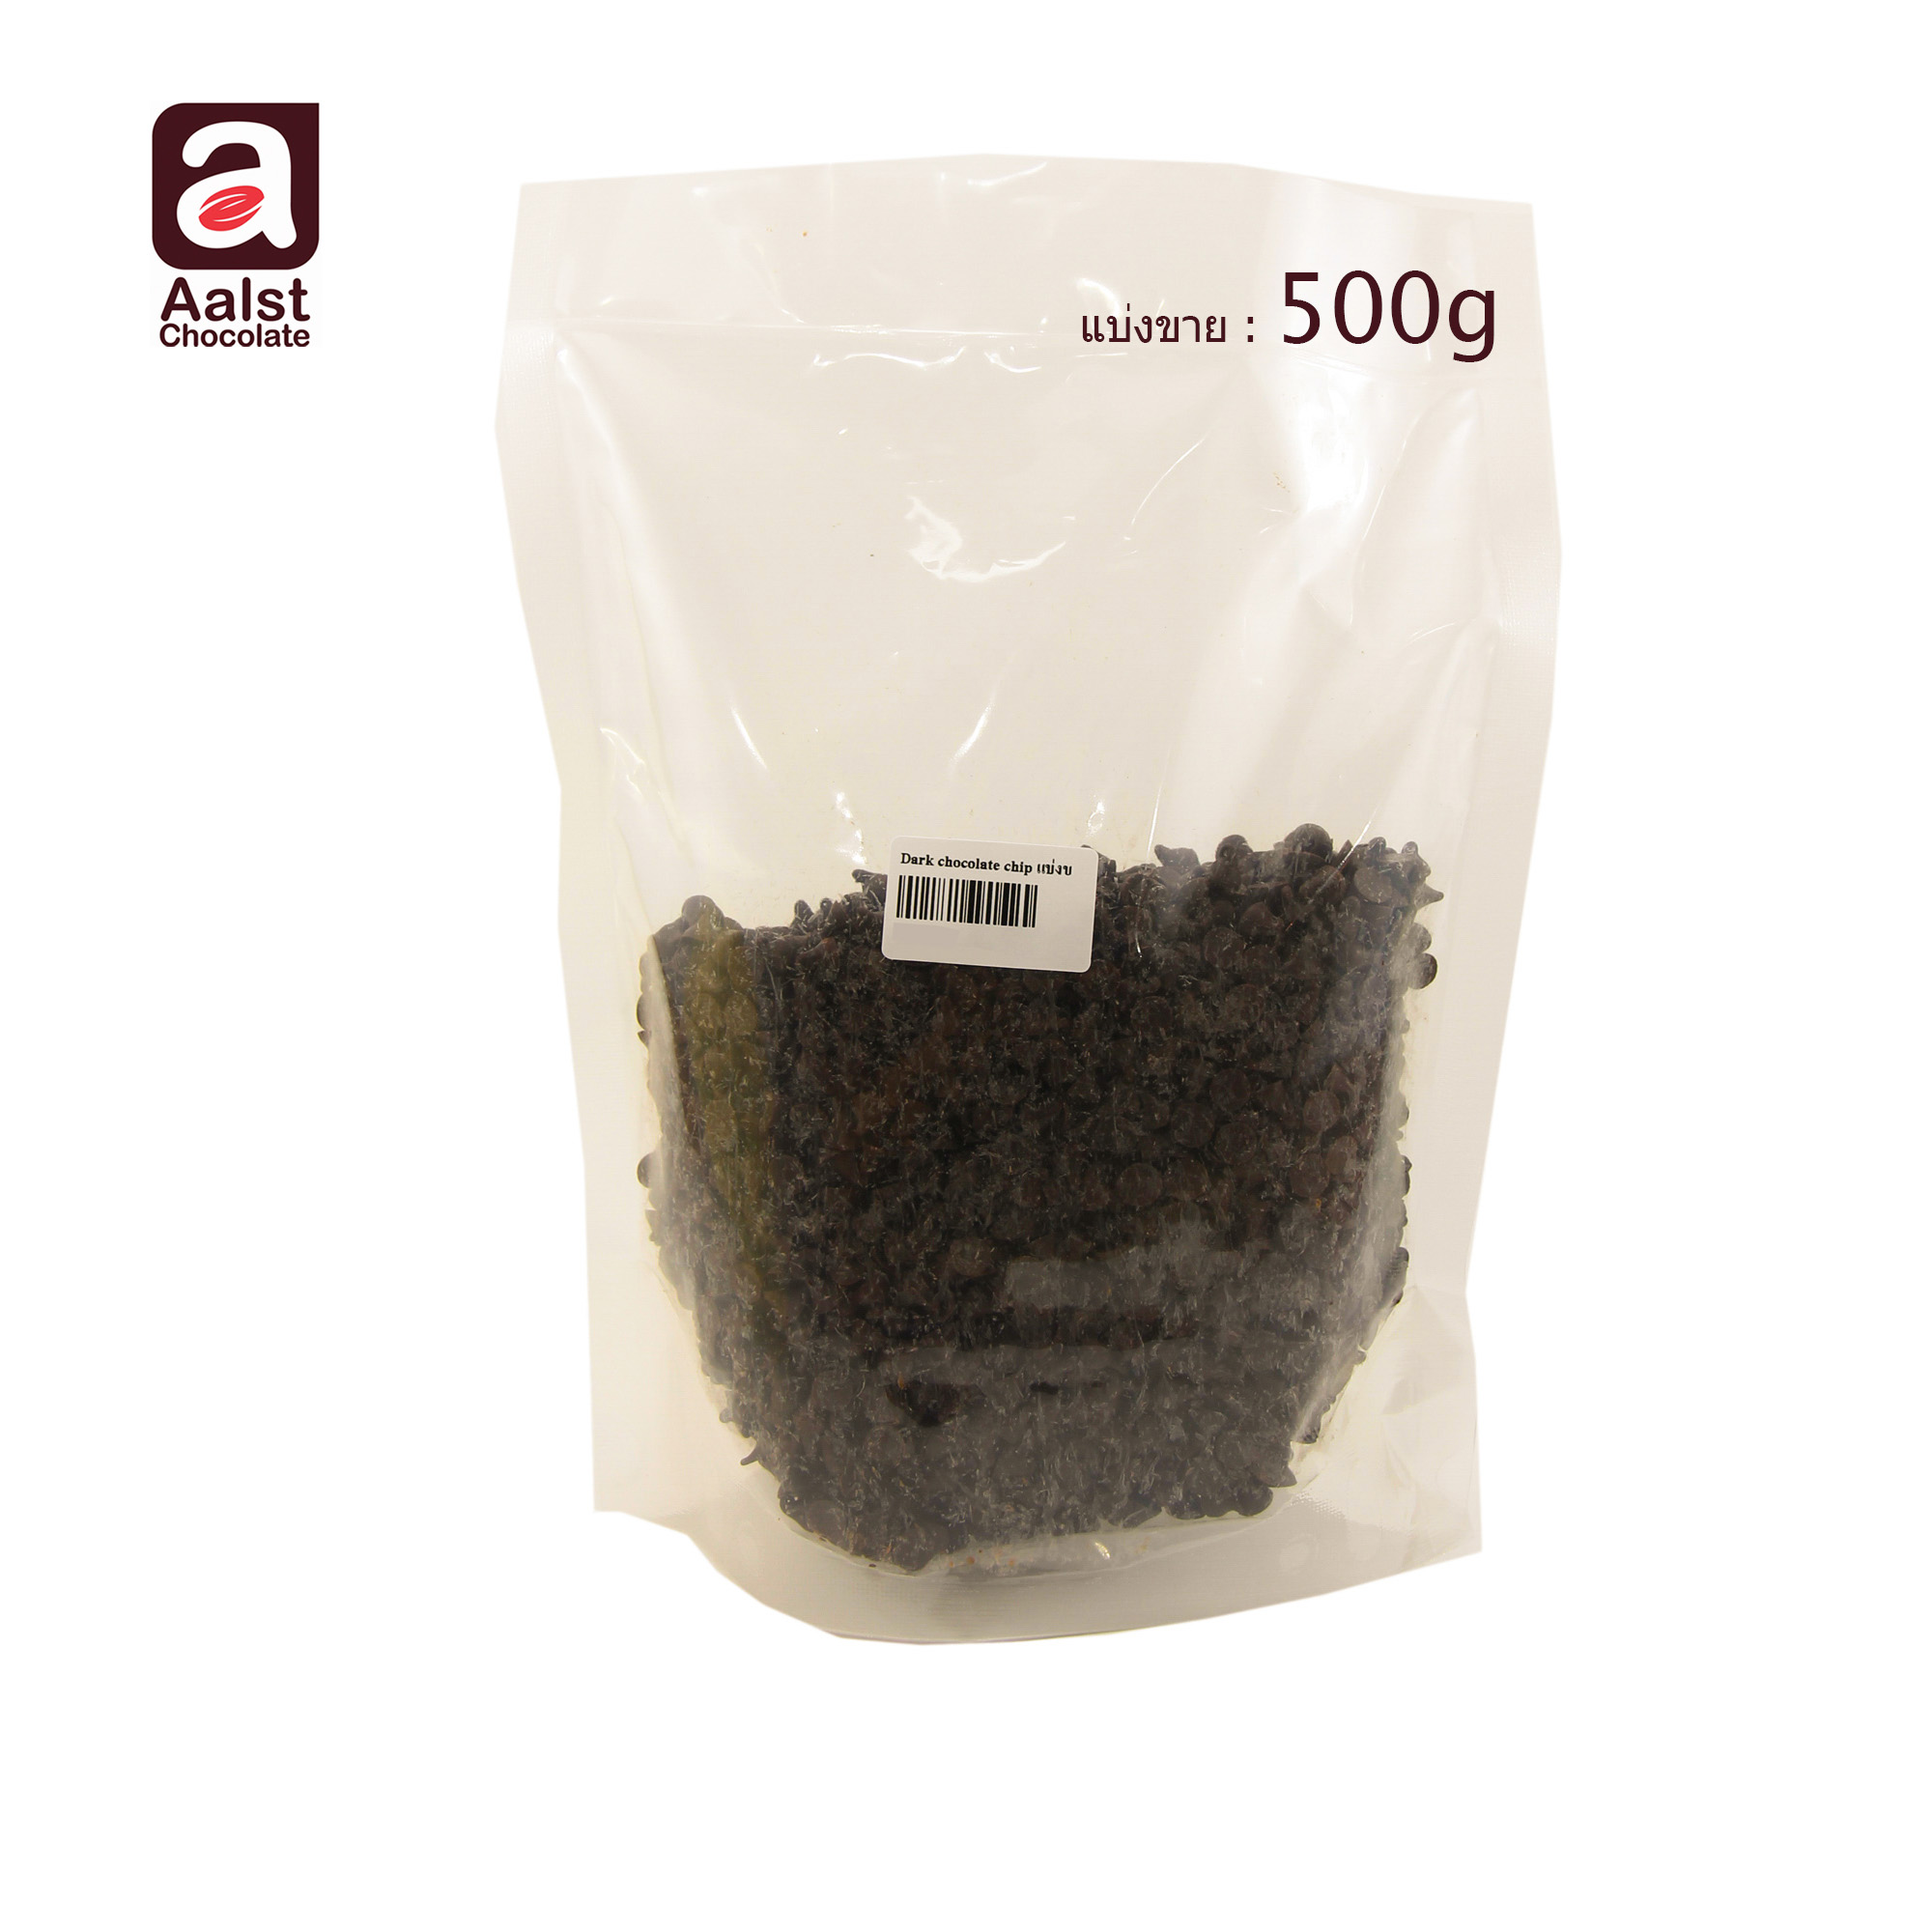 Aalst Dark Choc chip แบ่งขาย 500 g